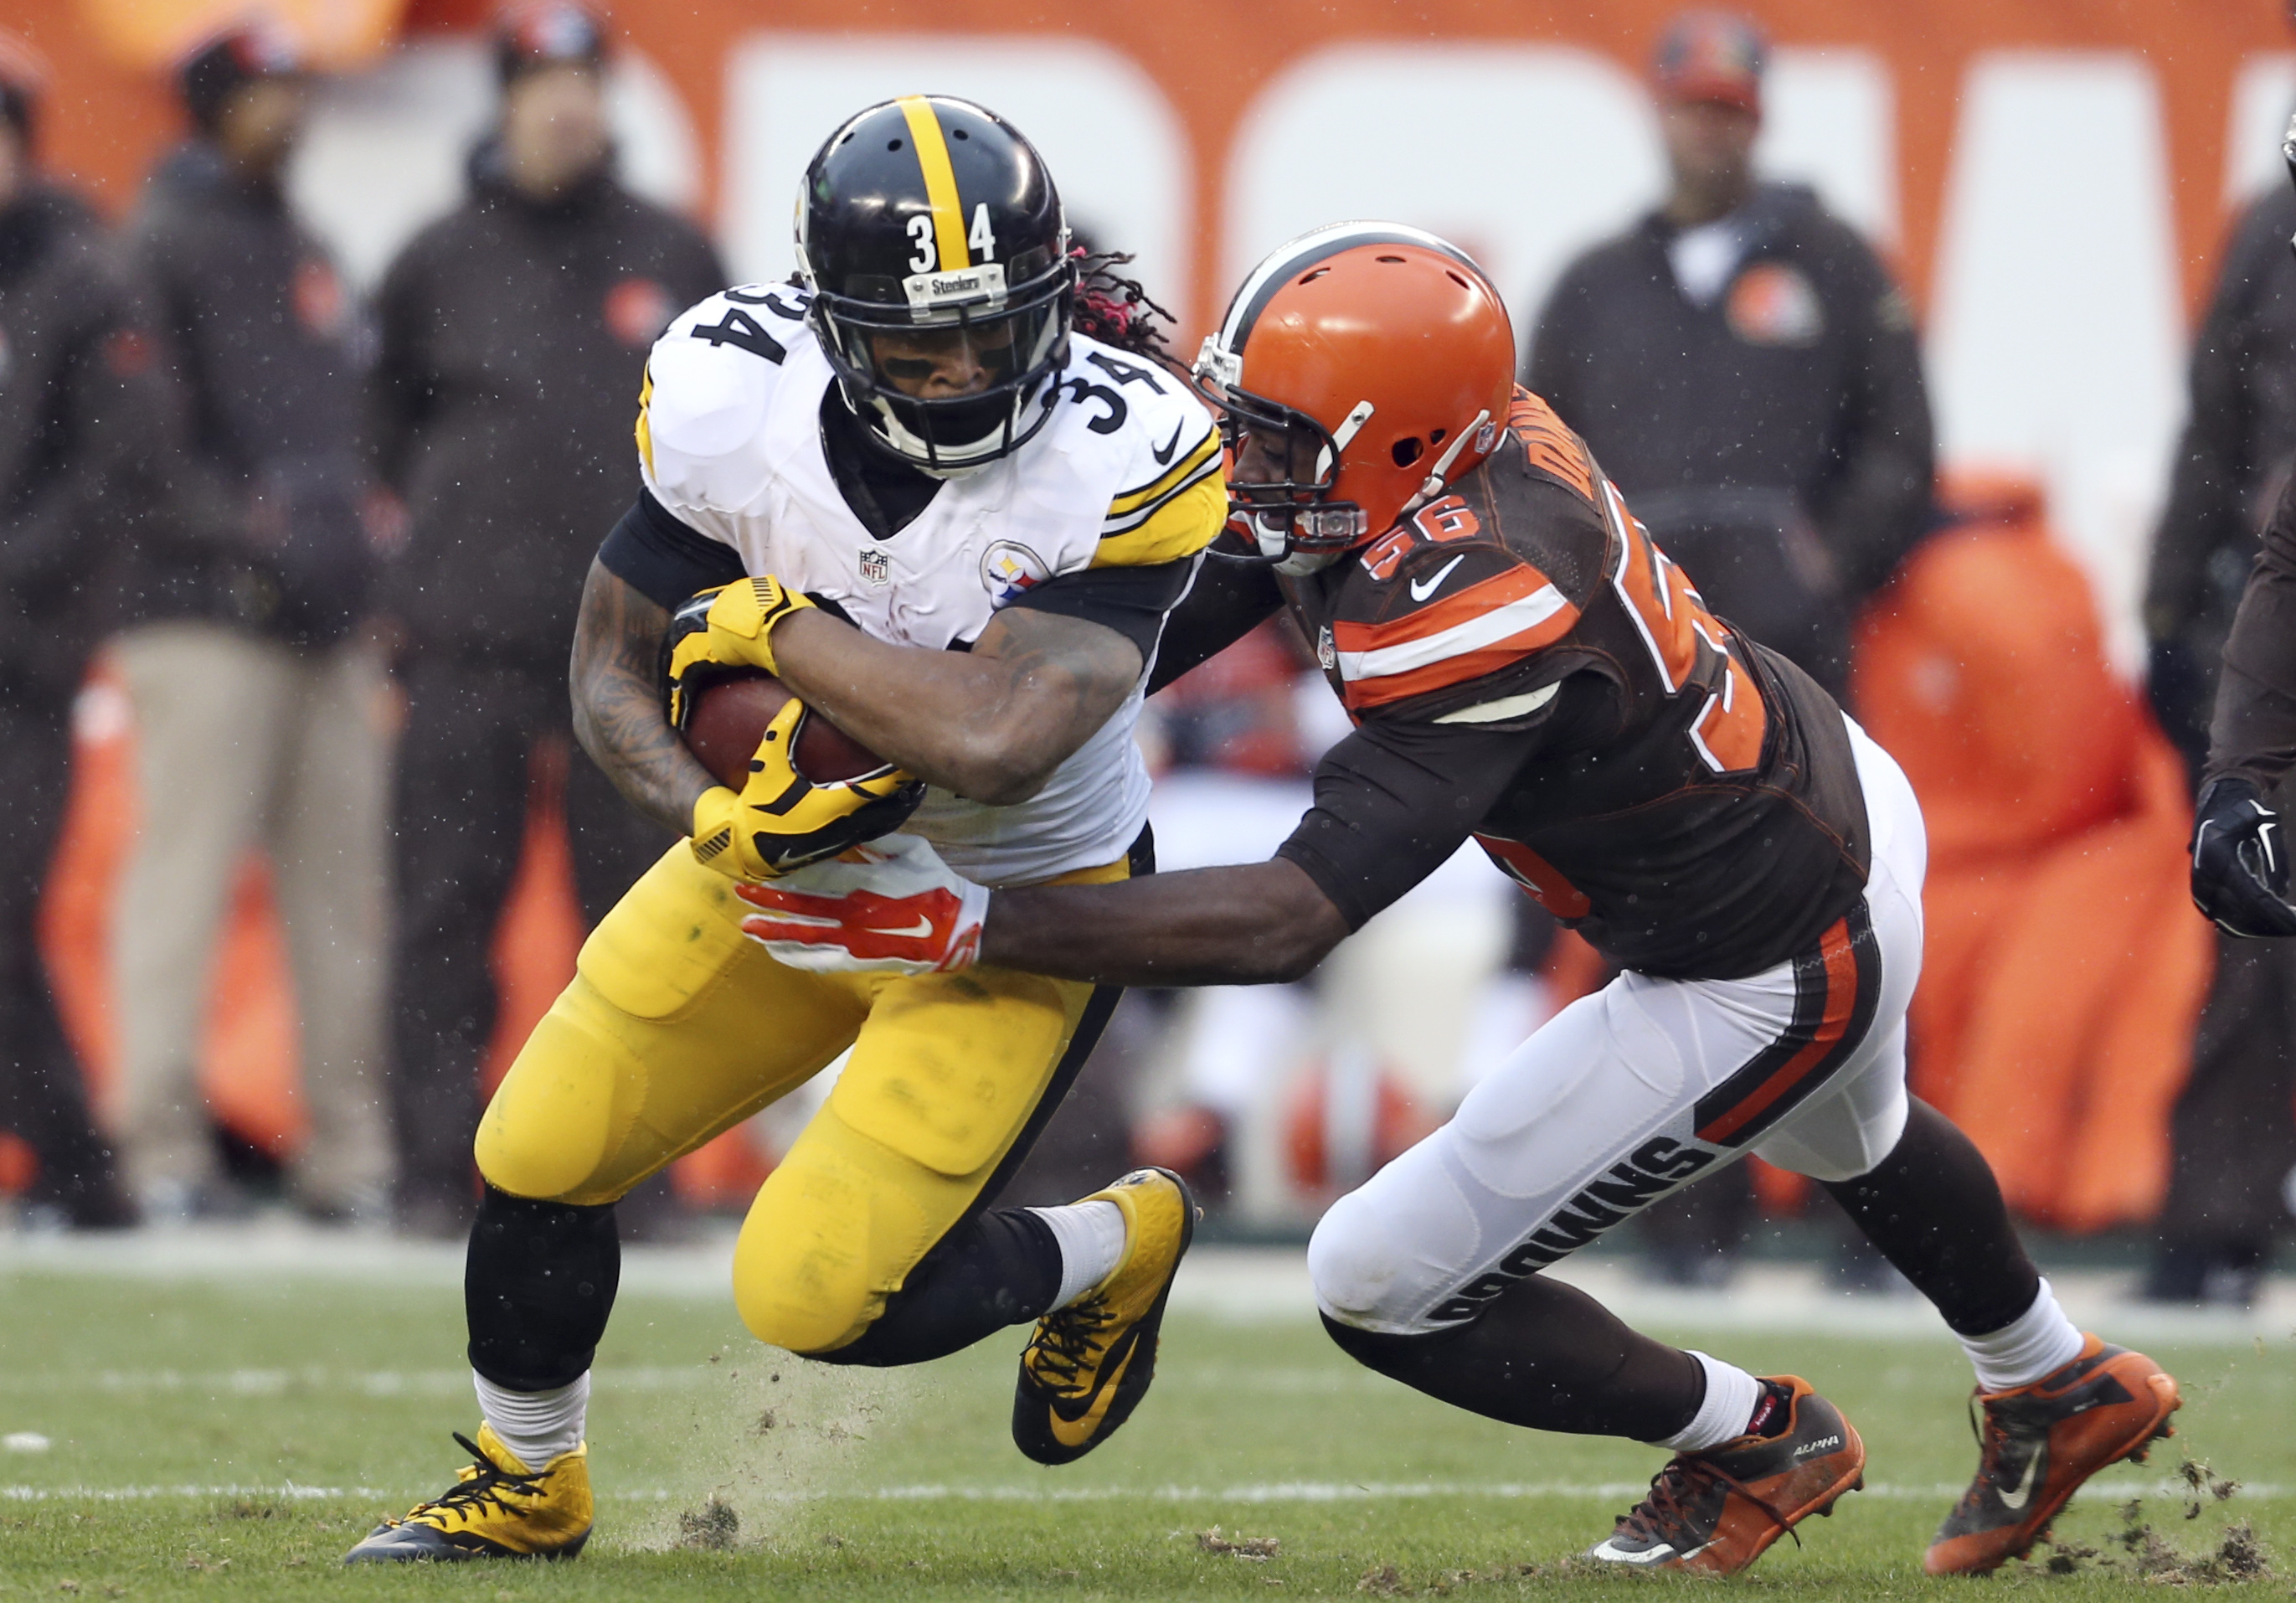 Pittsburgh Steelers running back DeAngelo Williams (34) runs after a pass reception as Cleveland Browns linebacker Karlos Dansby (56) defends during the first half of an NFL football game, Sunday, Jan. 3, 2016, in Cleveland. (AP Photo/Ron Schwane)